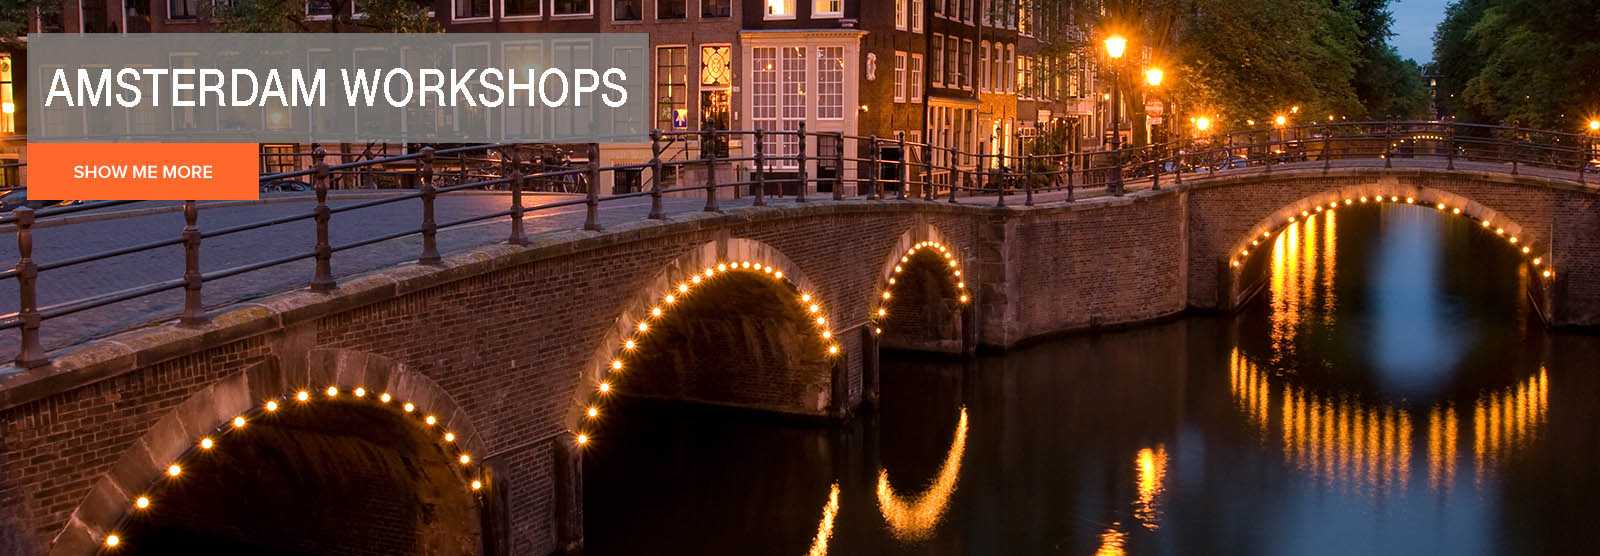 Workshops amsterdam